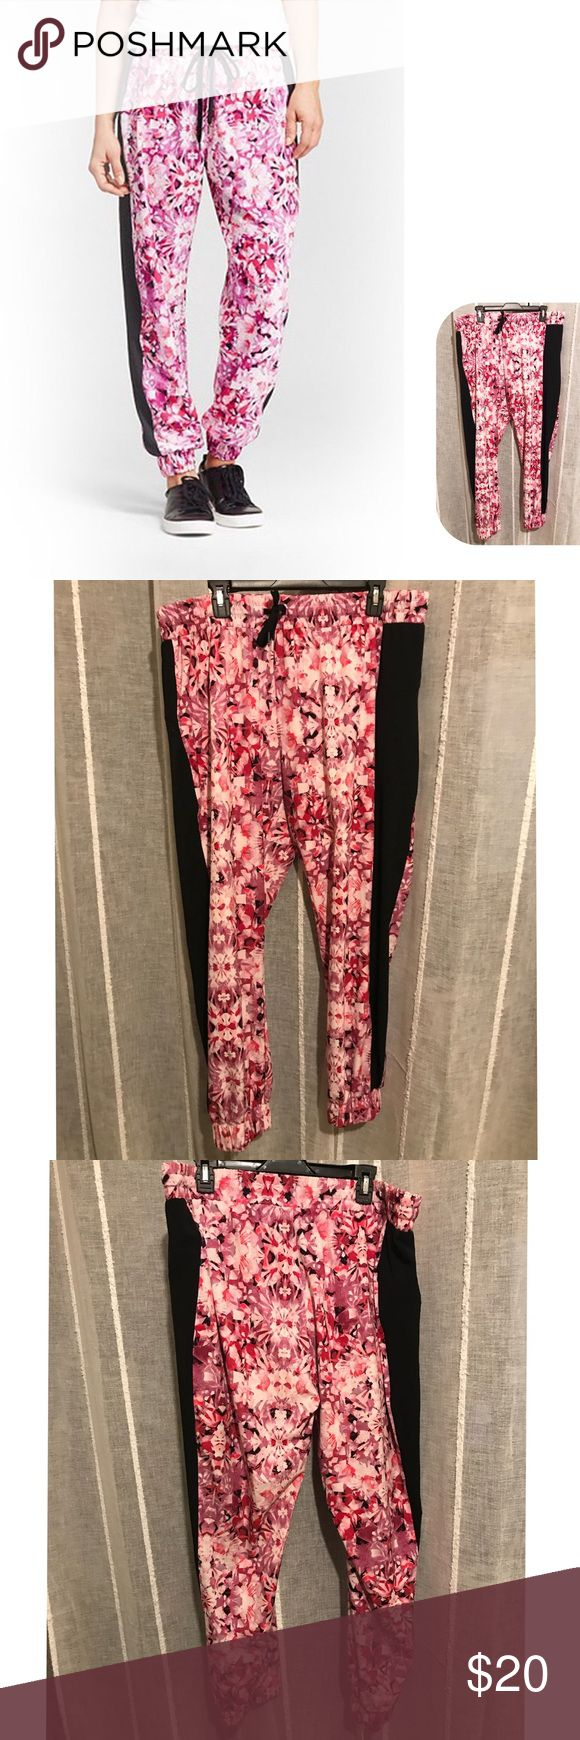 NWOT plus size floral track pants Brand: Champion Size: XXL Description: super comfy floral track pants. Jogger style with zipper pockets. Condition: New without tags  Other tags: athletic wear, workout, yoga, running Champion Pants Track Pants & Joggers